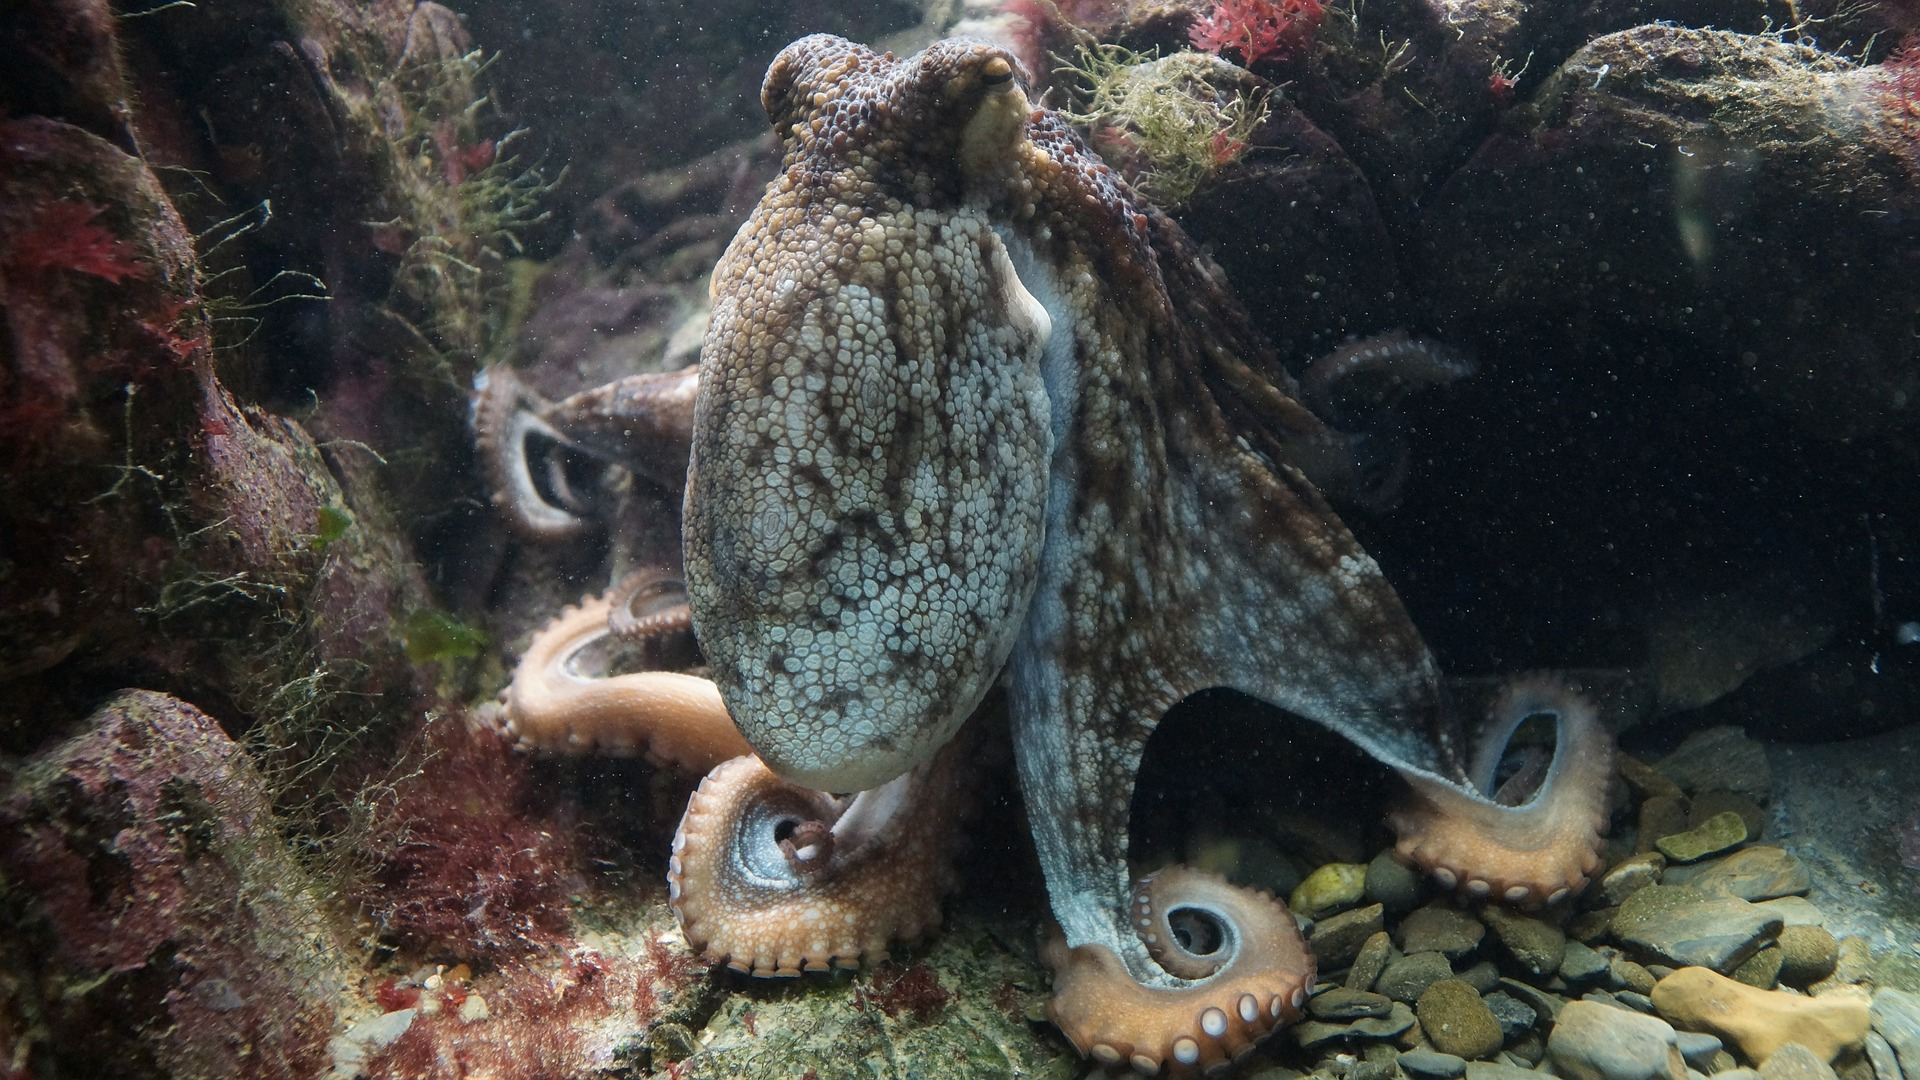 The octopus is an invertebrate which means it doesn't have any bones in their body. They can get into or squeeze through the tiniest of holes and cracks.